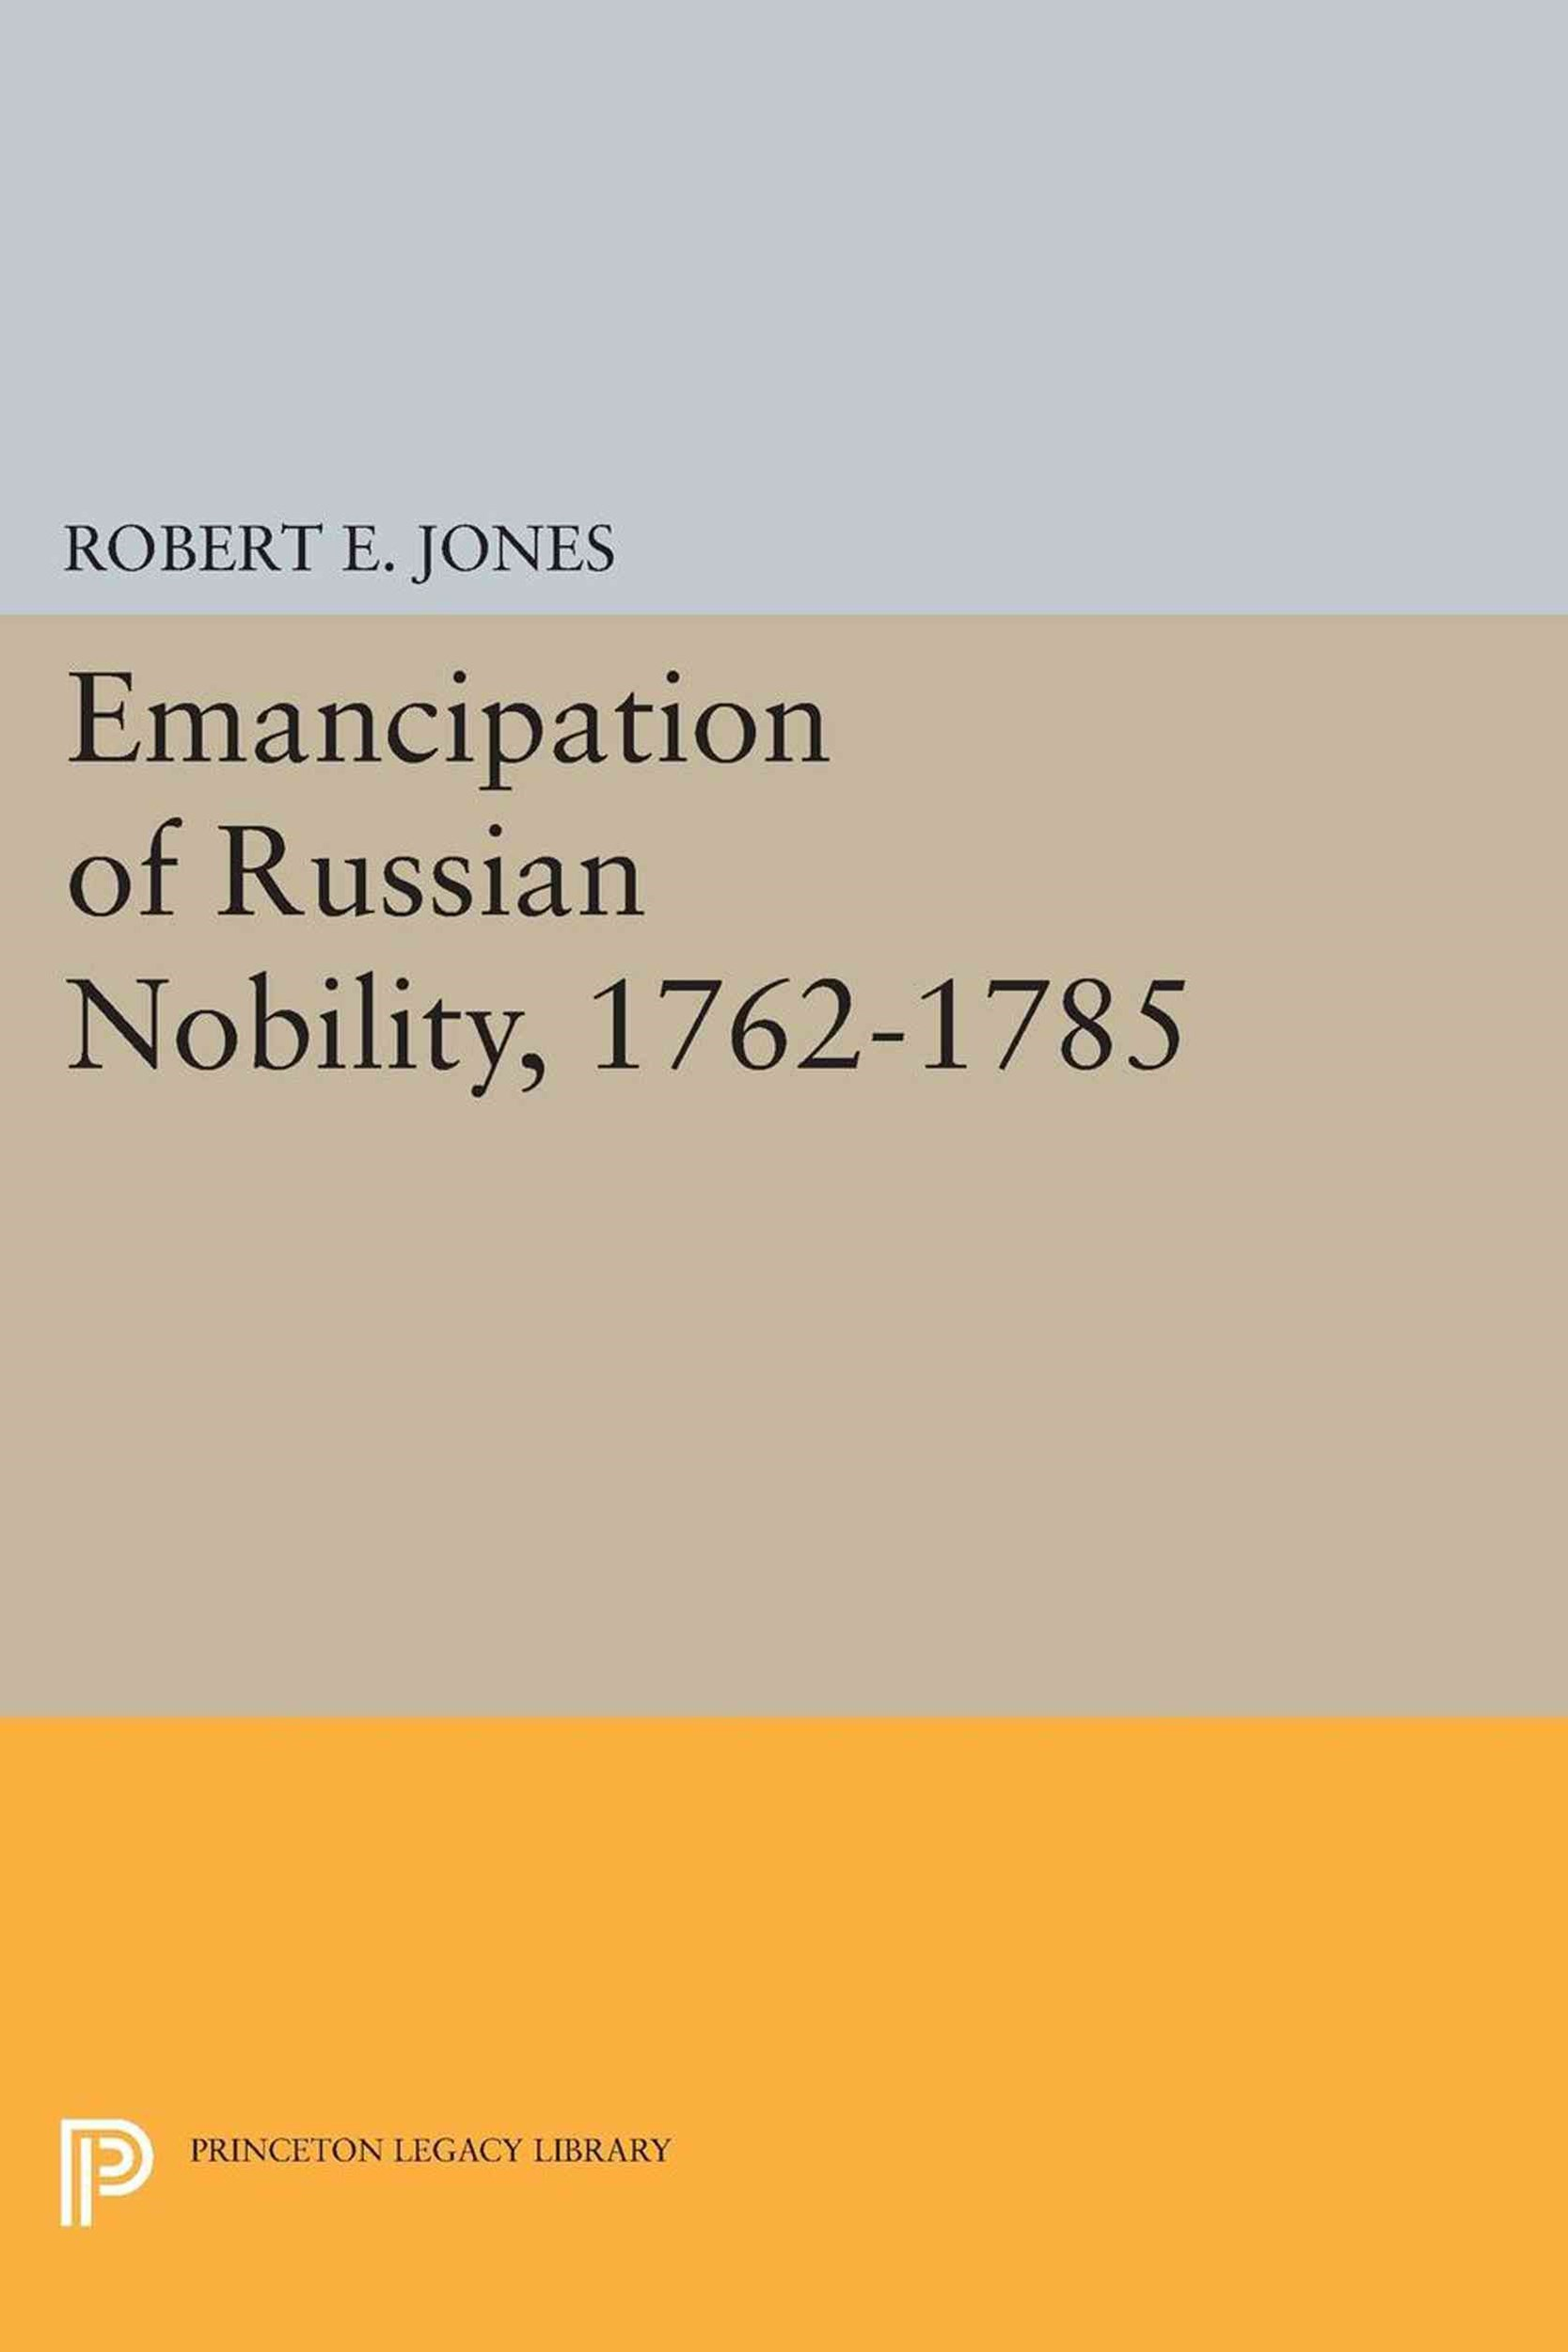 Emancipation of Russian Nobility, 1762-1785